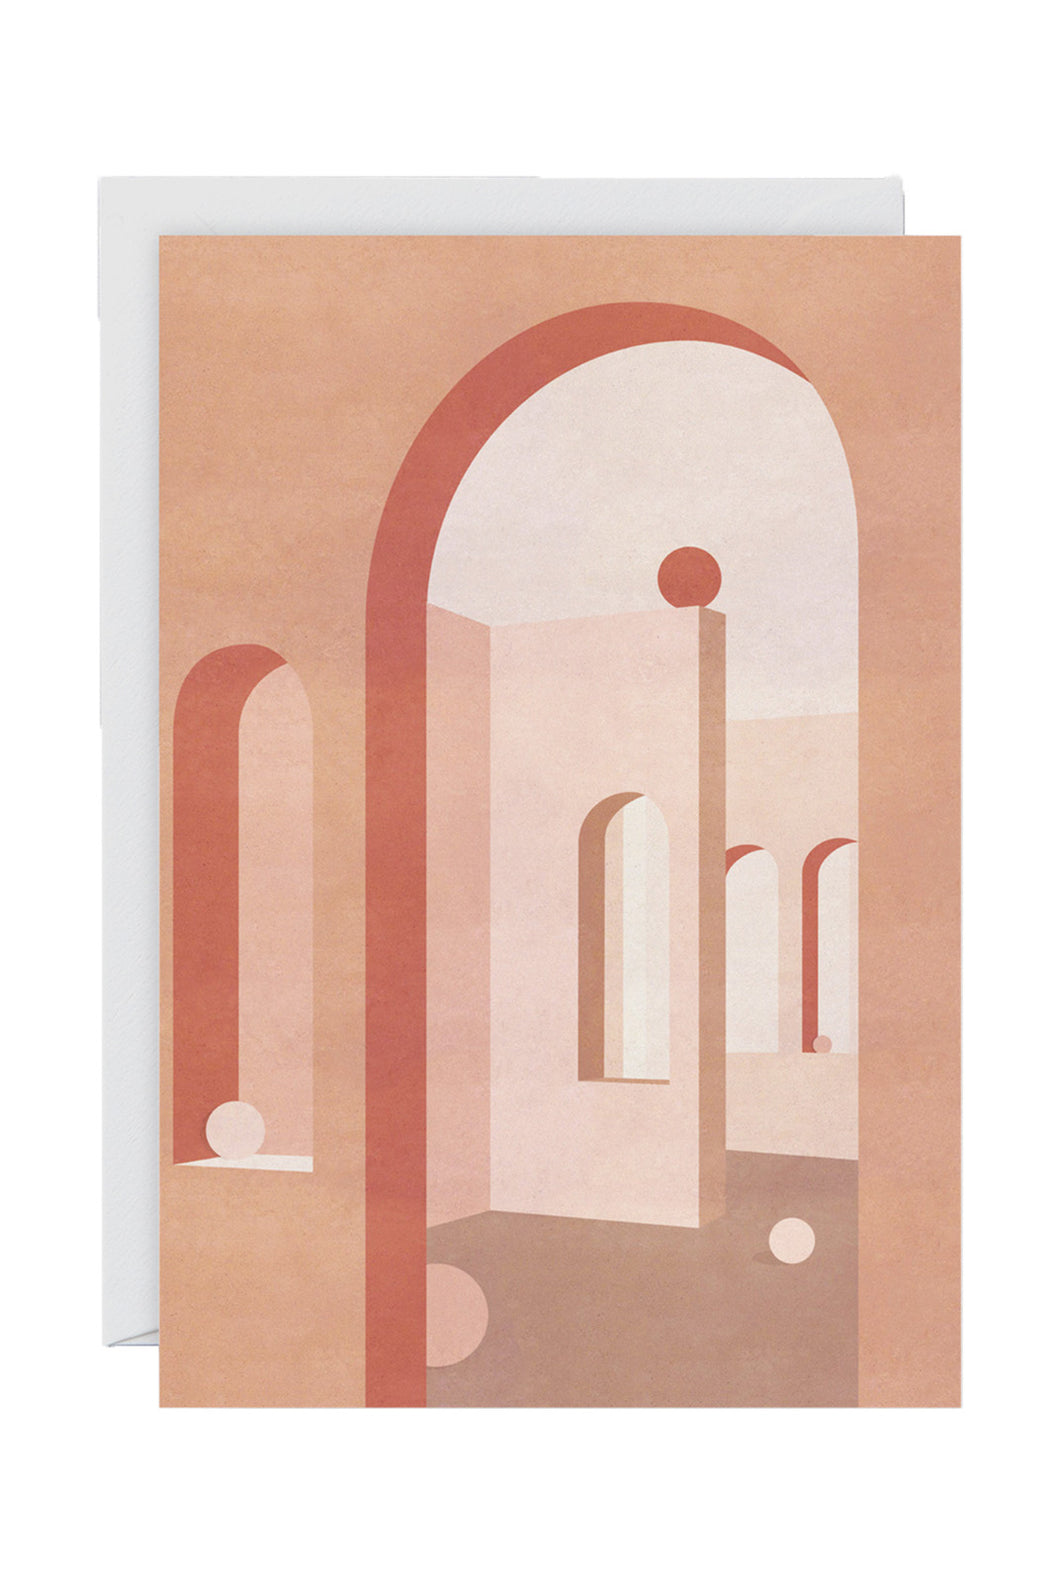 WRAP - Charlotte Taylor Collection - Single Art Card - Terracotta Arches